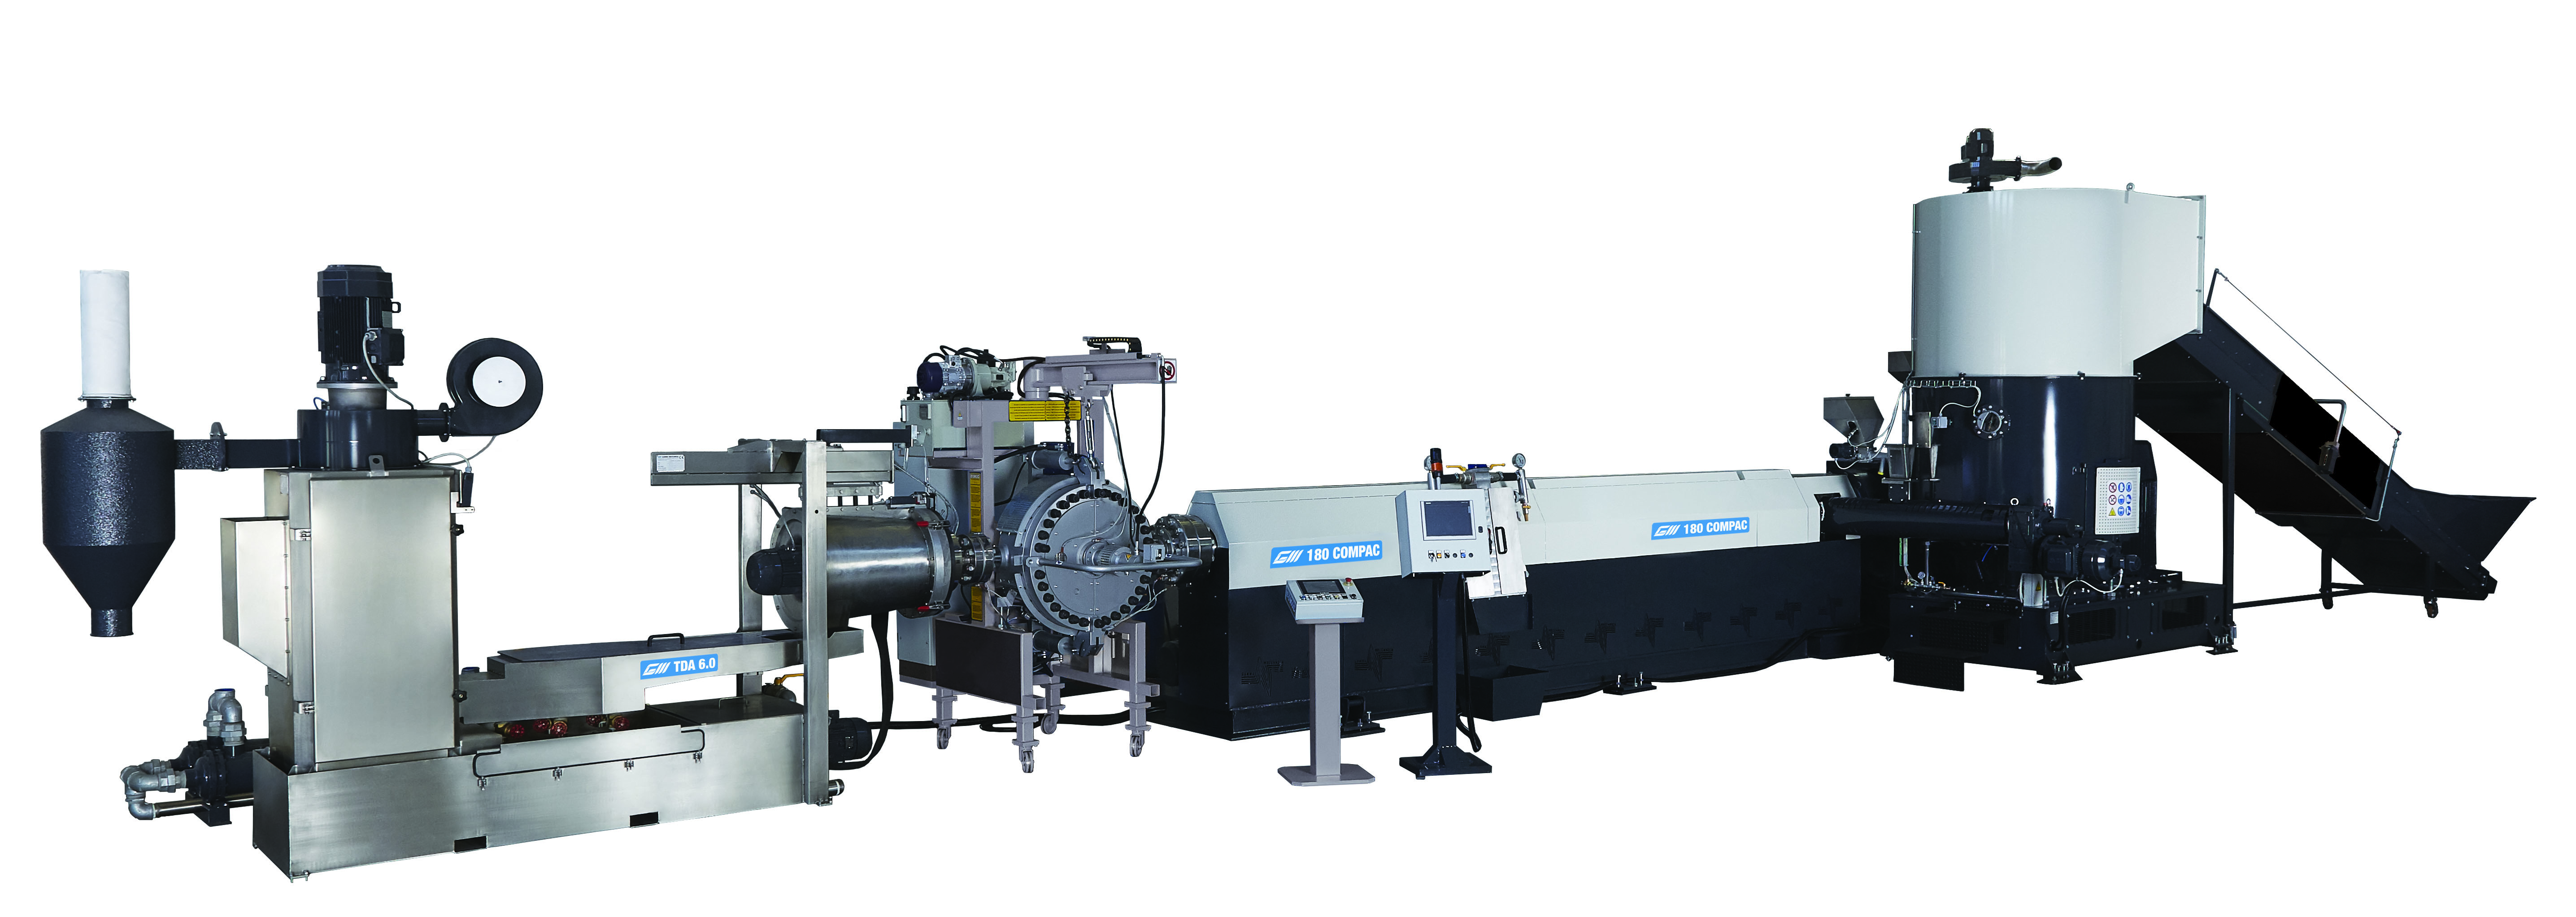 Gamma GM180 extrusion line.